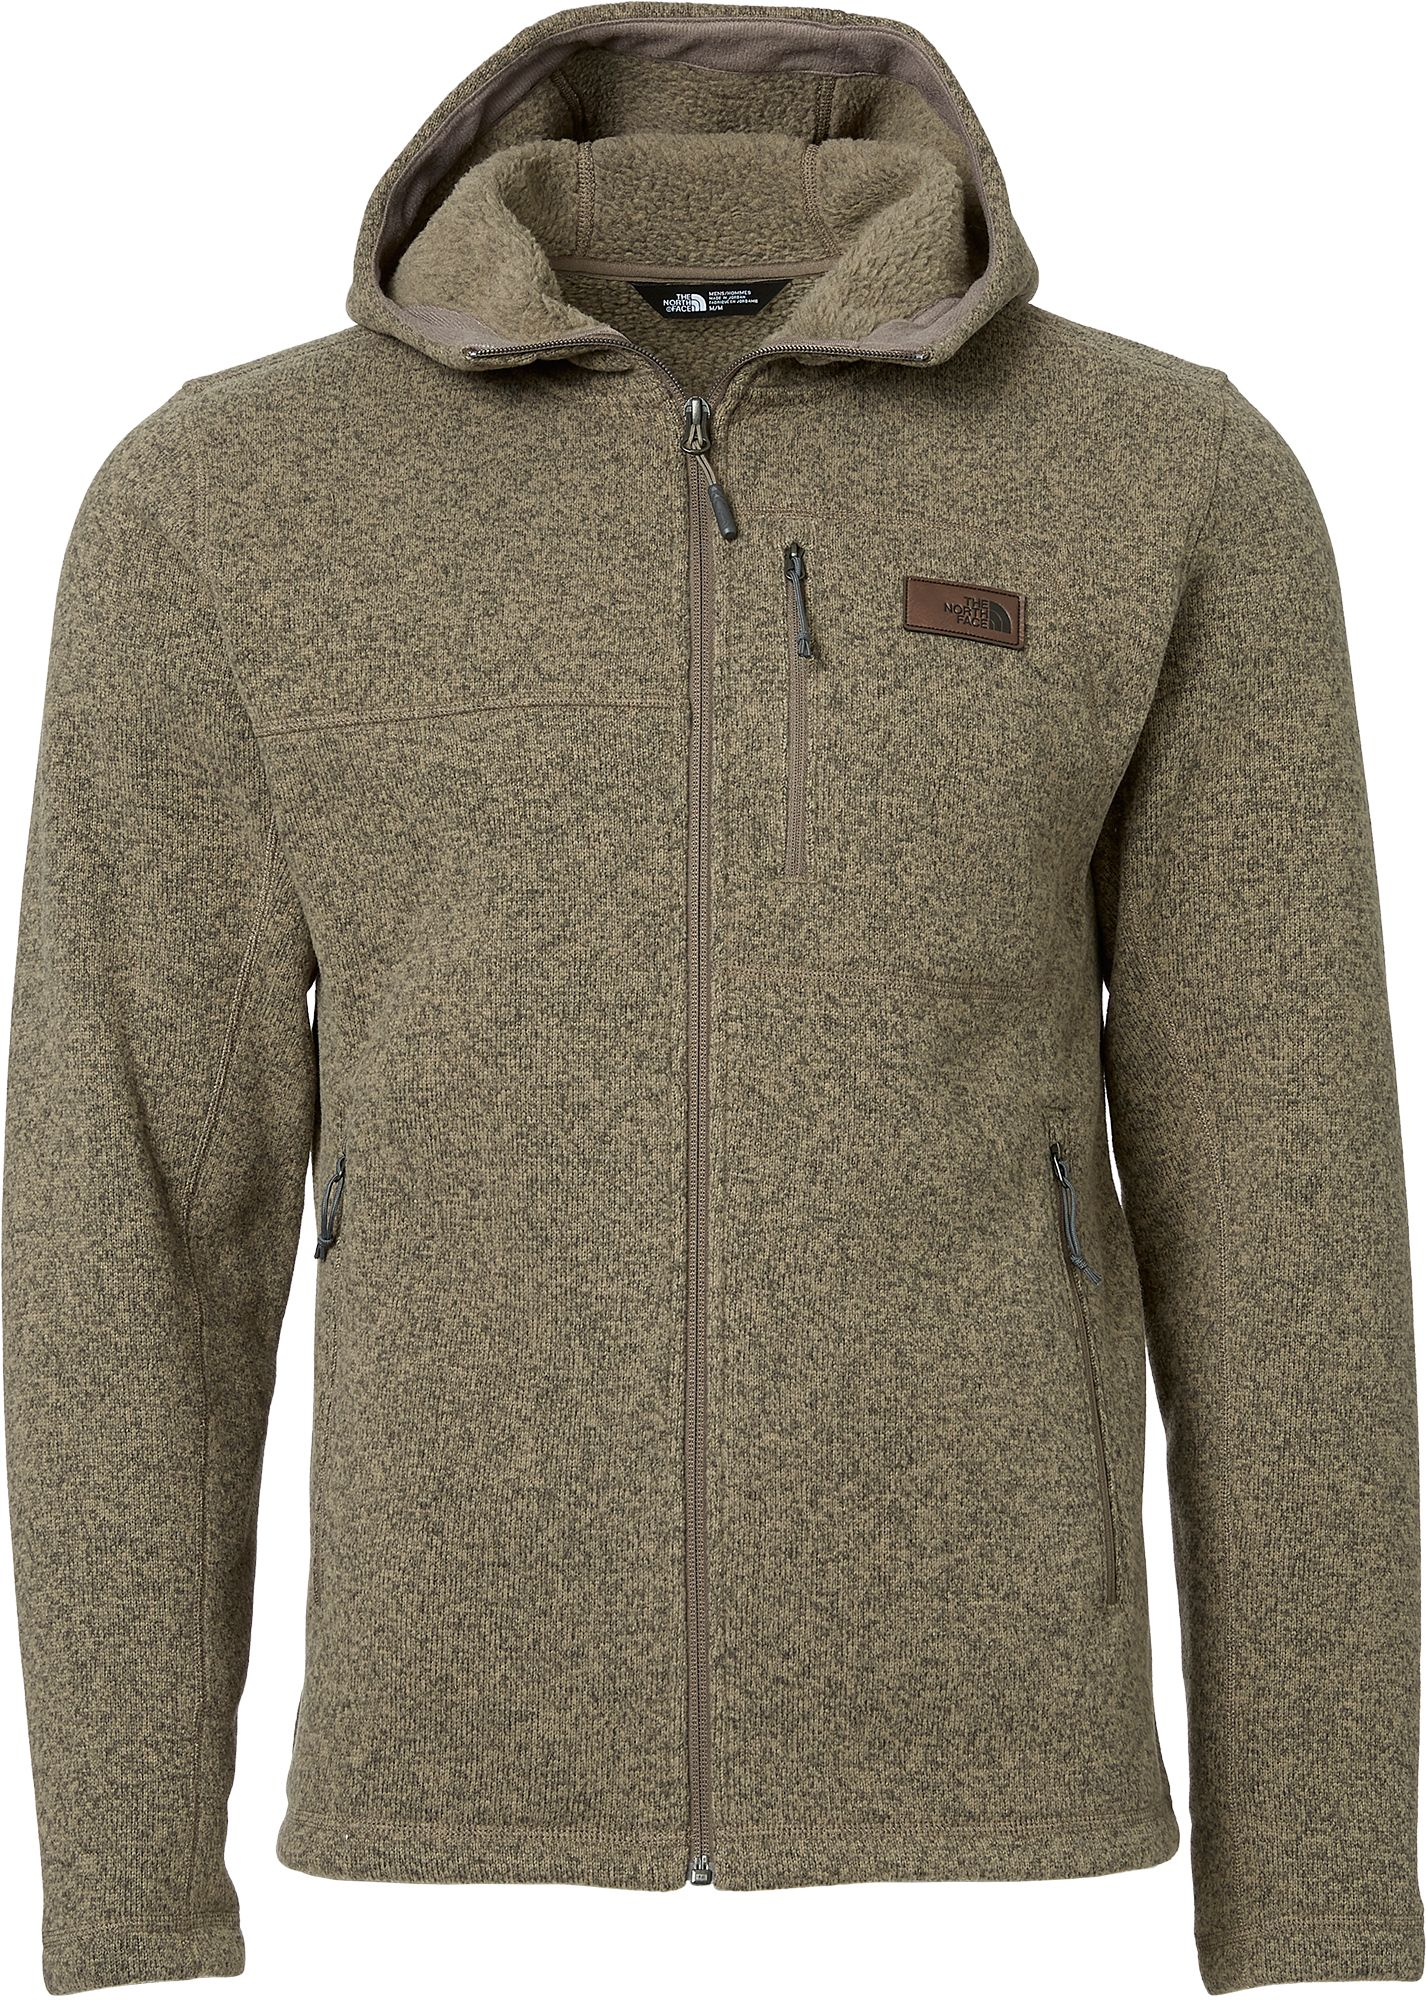 The north face mens jackets up to 40 off dicks sporting goods product image the north face mens gordon lyons full zip hoodie past season buycottarizona